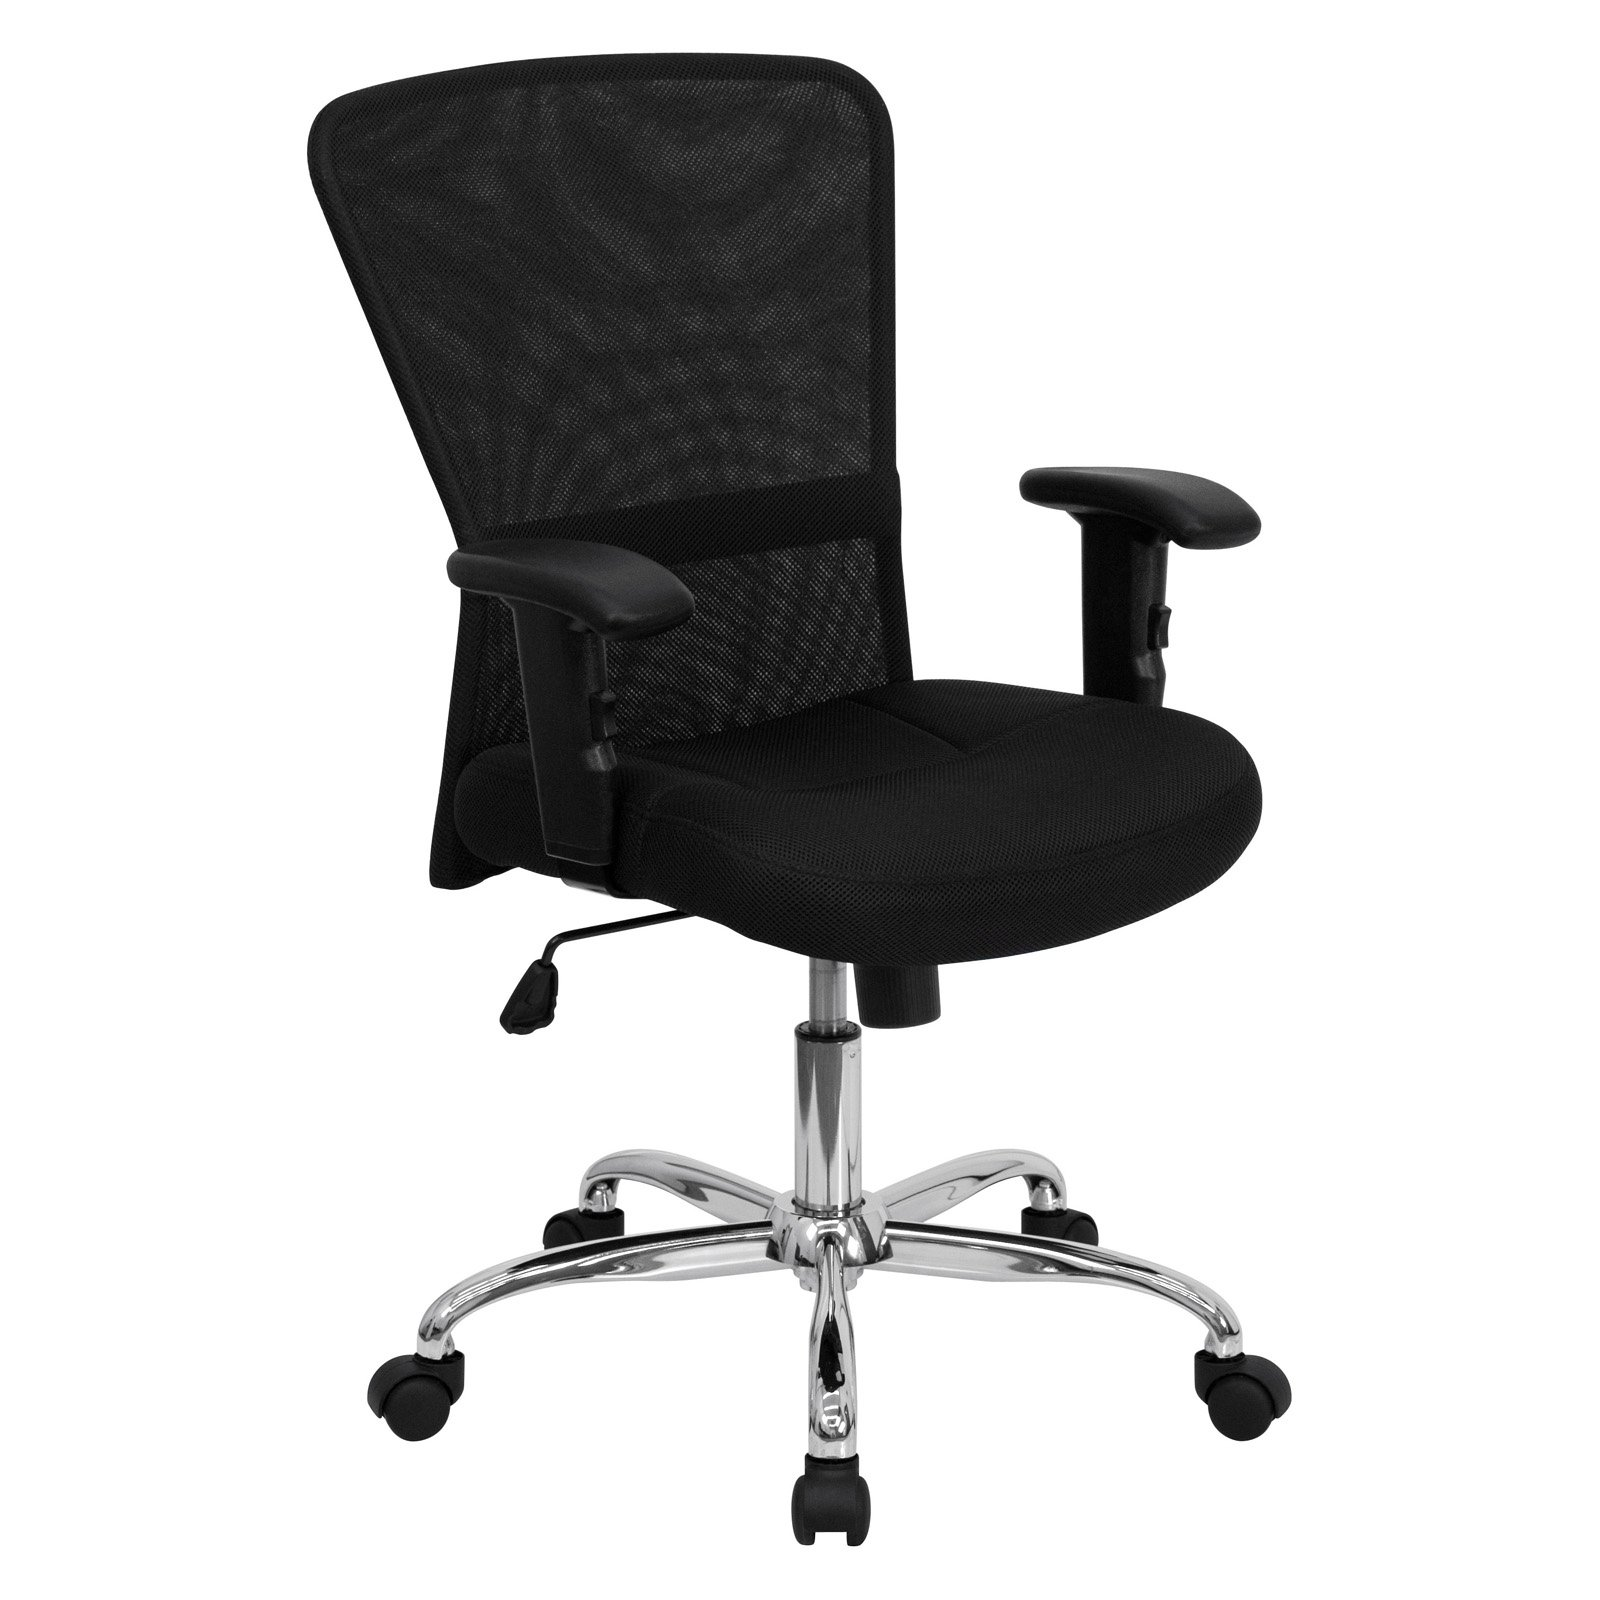 mesh office computer chair with chrome base, black - walmart